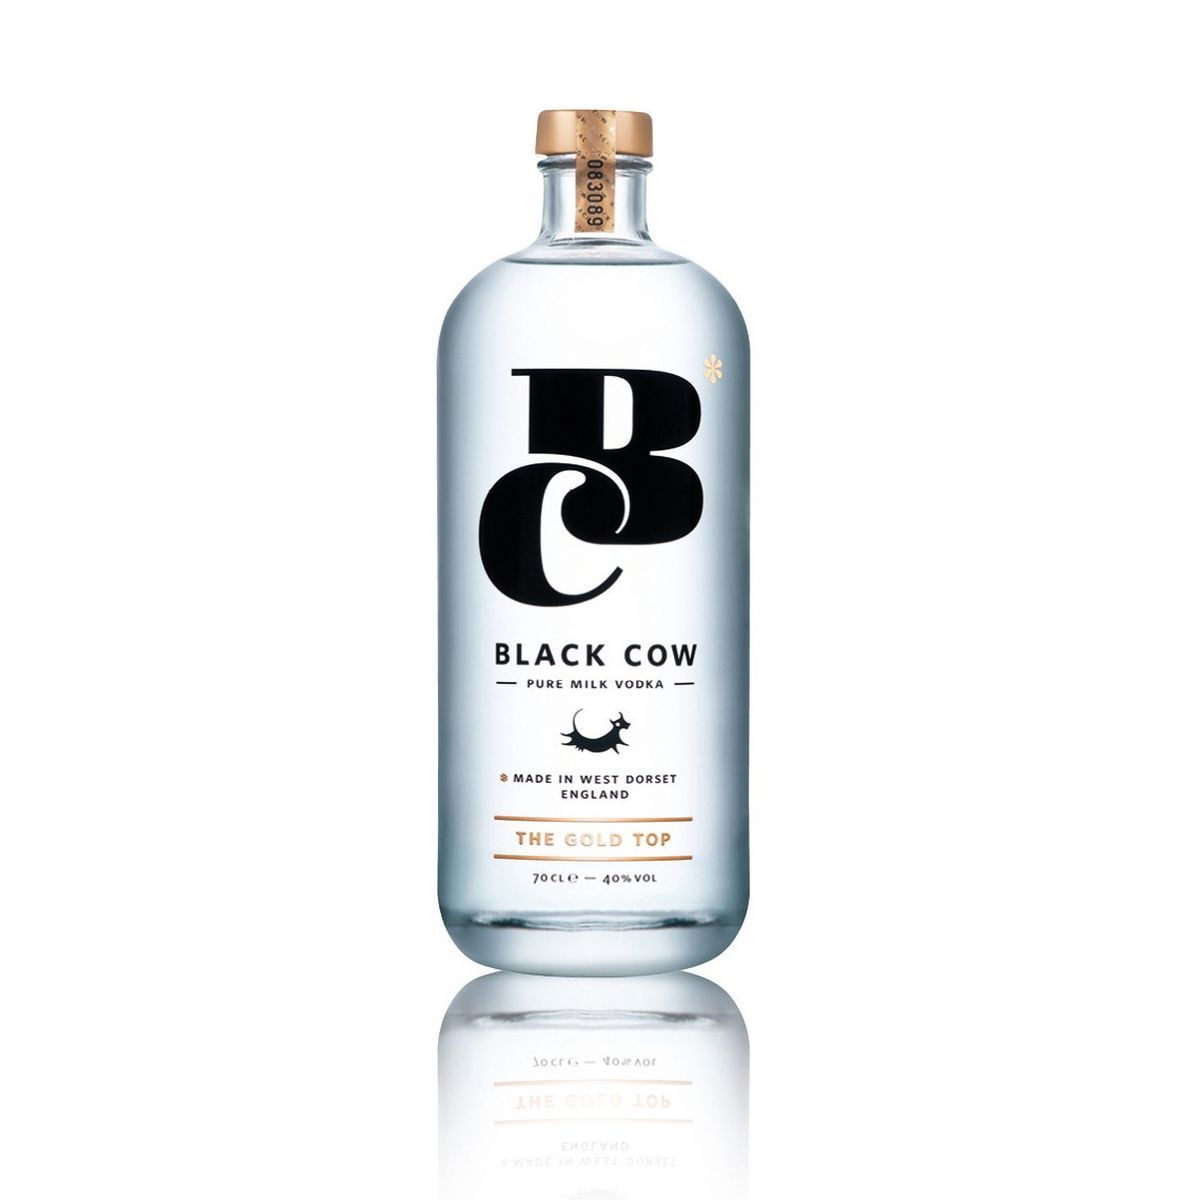 Black Cow Pure Milk Vodka